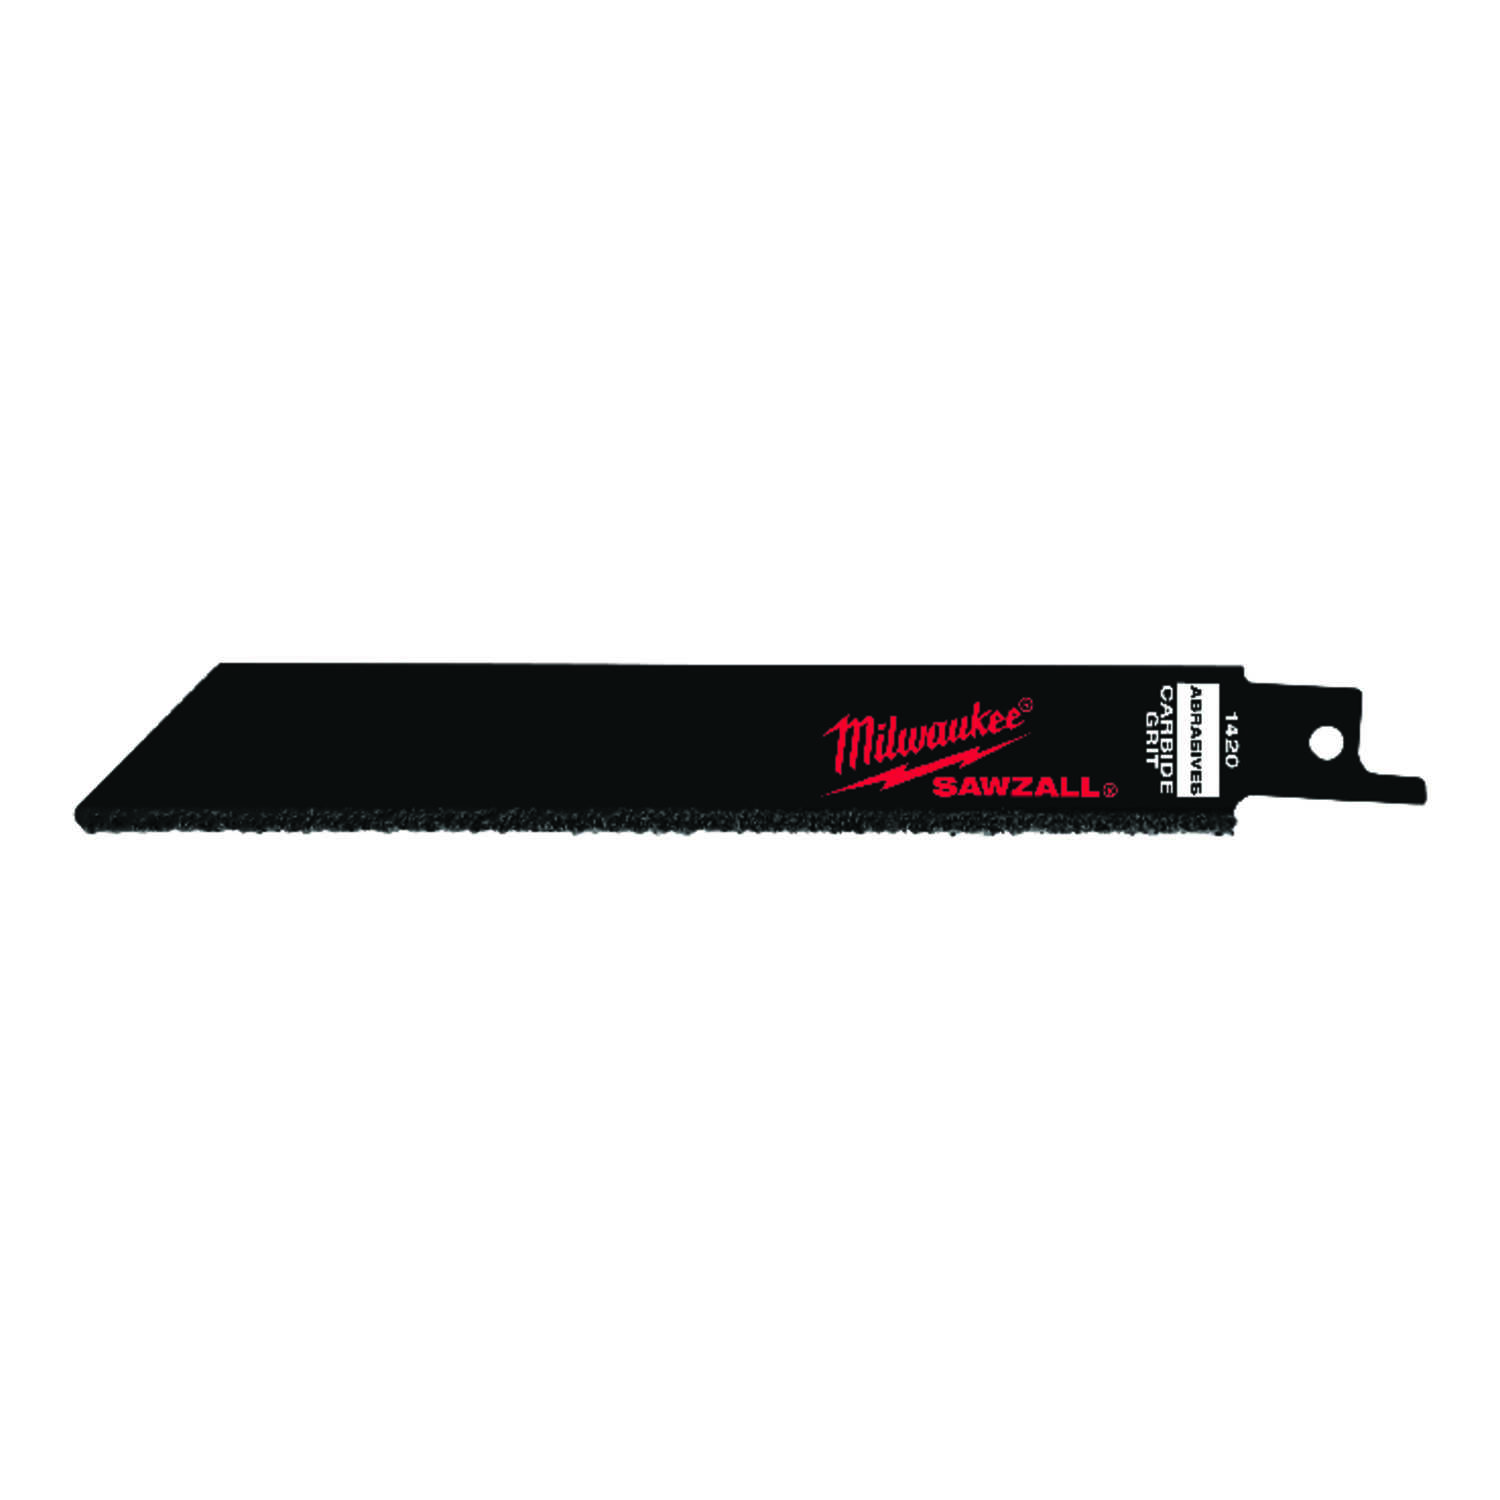 Milwaukee  SAWZALL  6 in. L x 0.68 in. W Carbide Grit  Carbide-Grit  Reciprocating Saw Blade  Multi